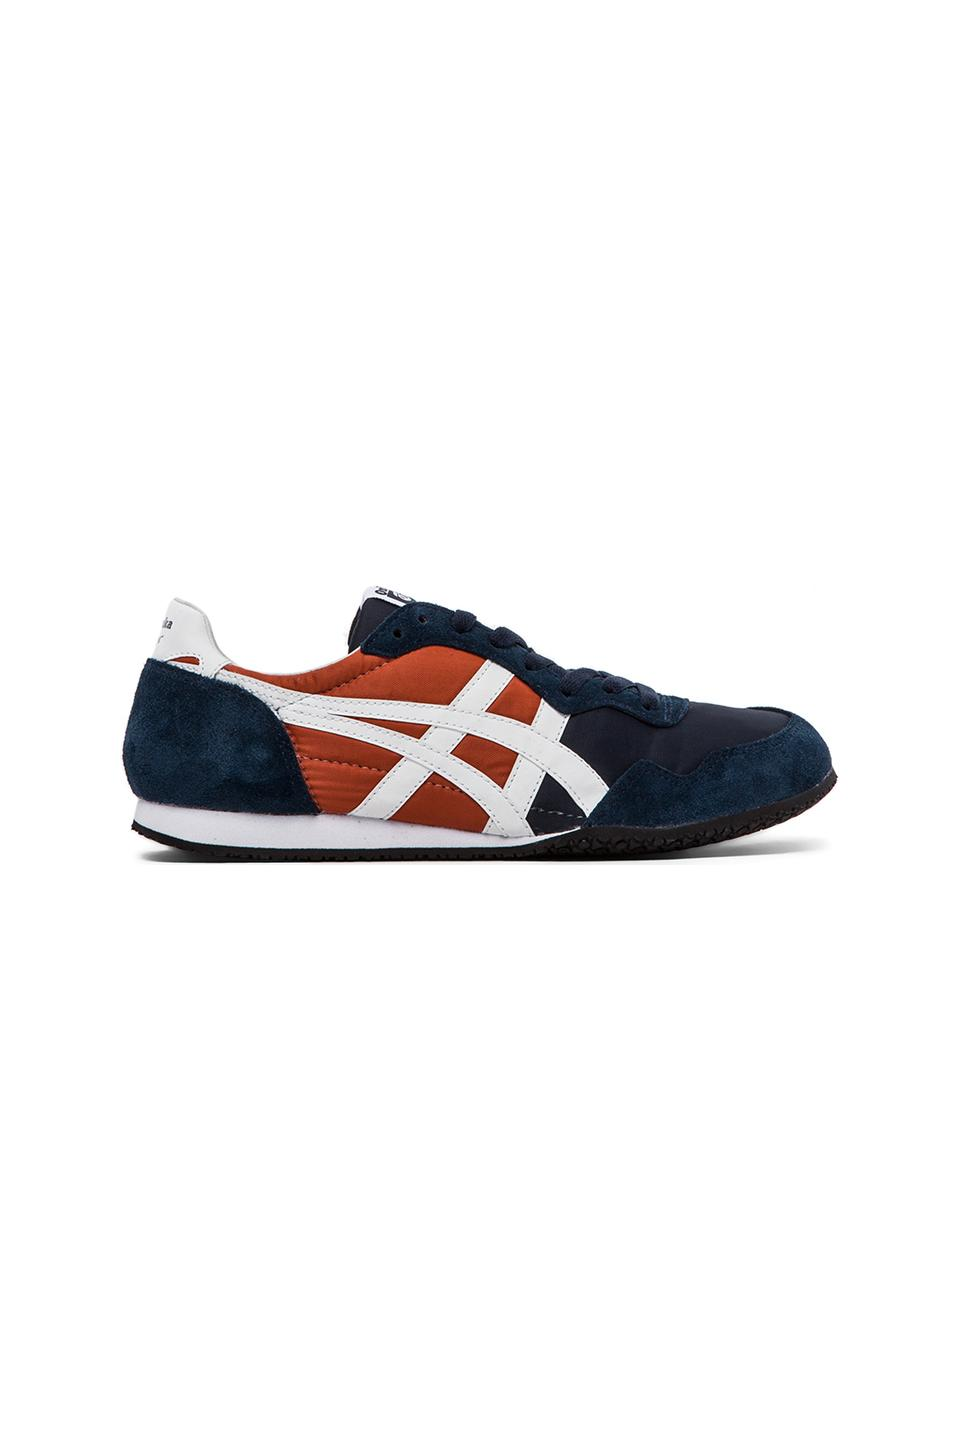 Onitsuka Tiger Serrano in Dark Navy & White